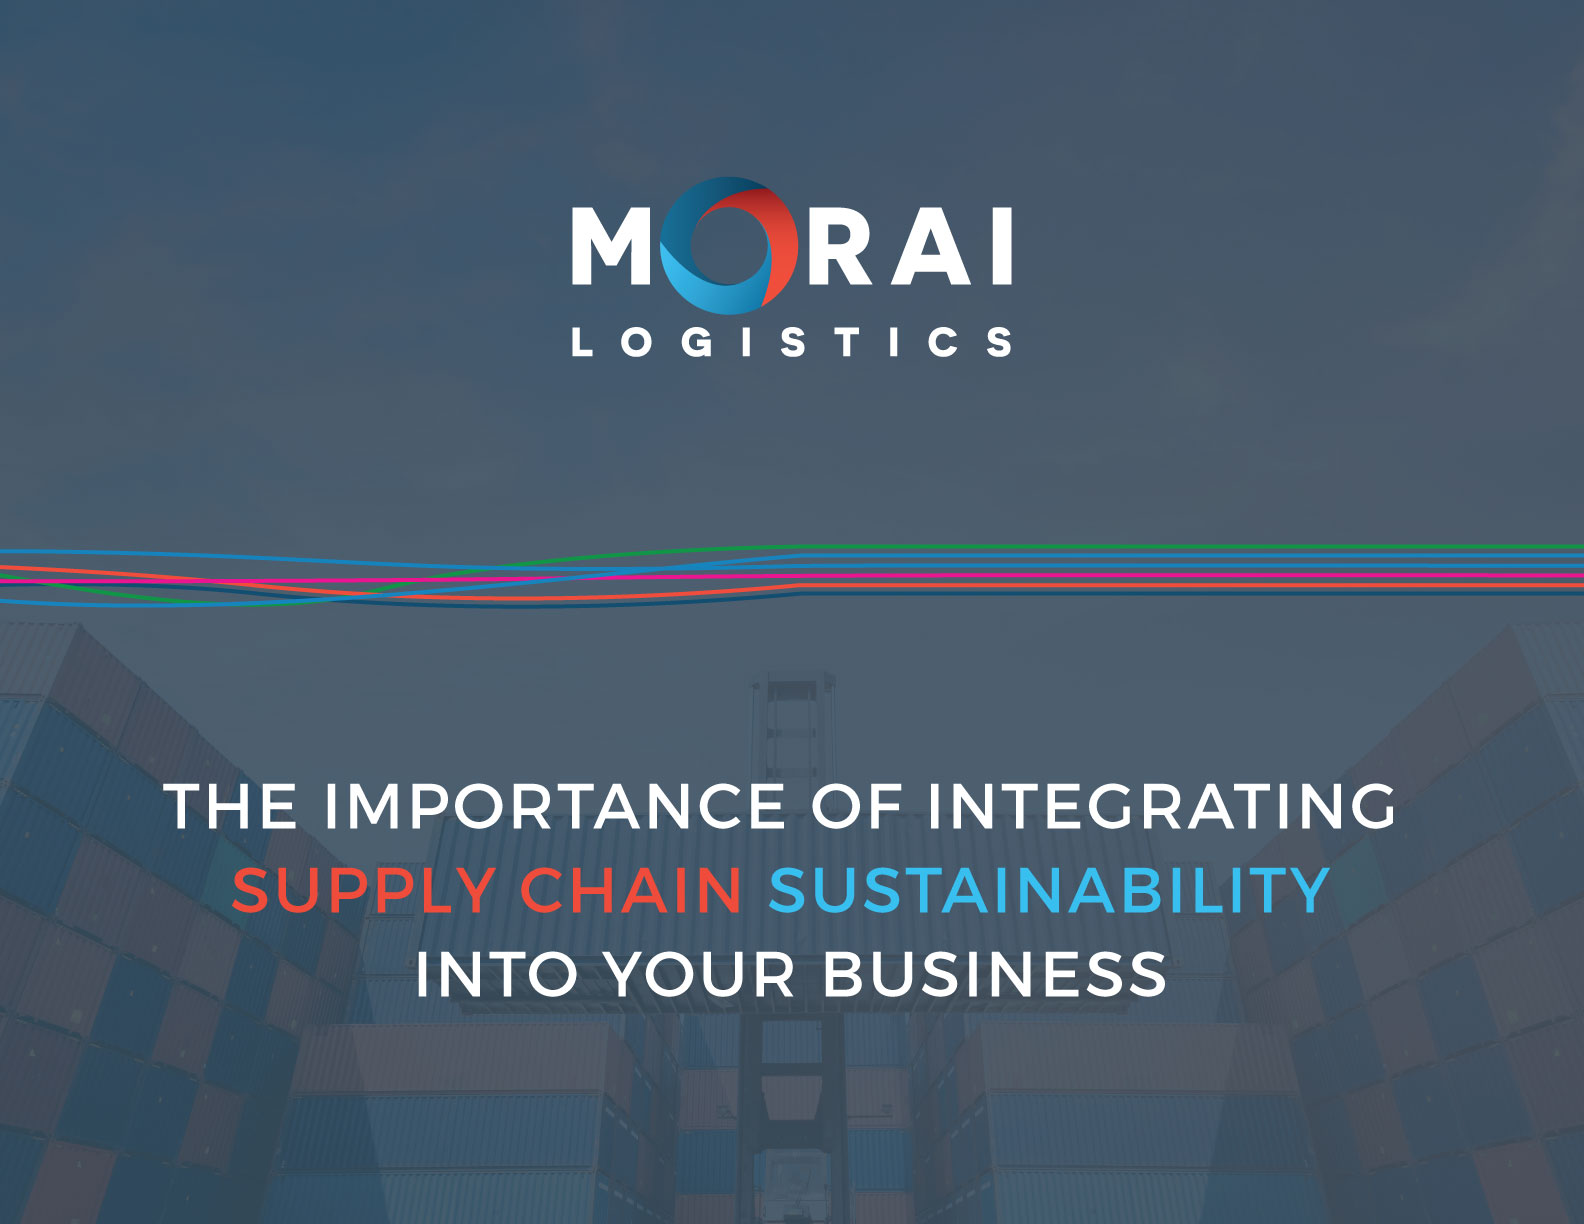 morai-logistics-ebook-supply-chain-sustinability-image